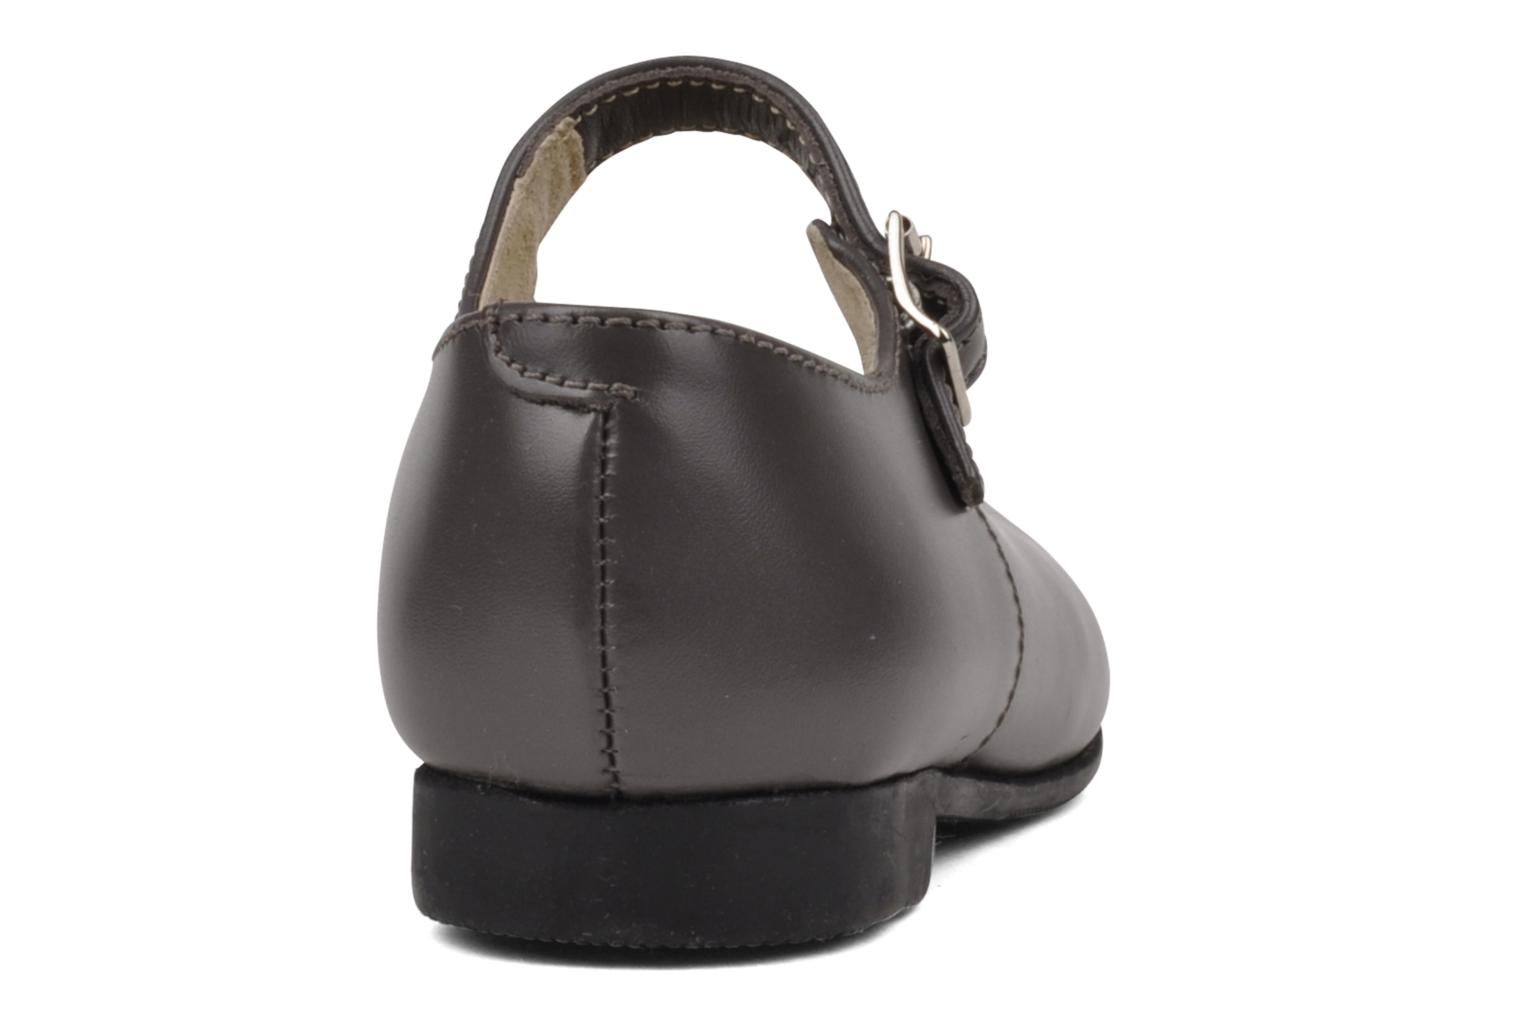 Clare Grey leather